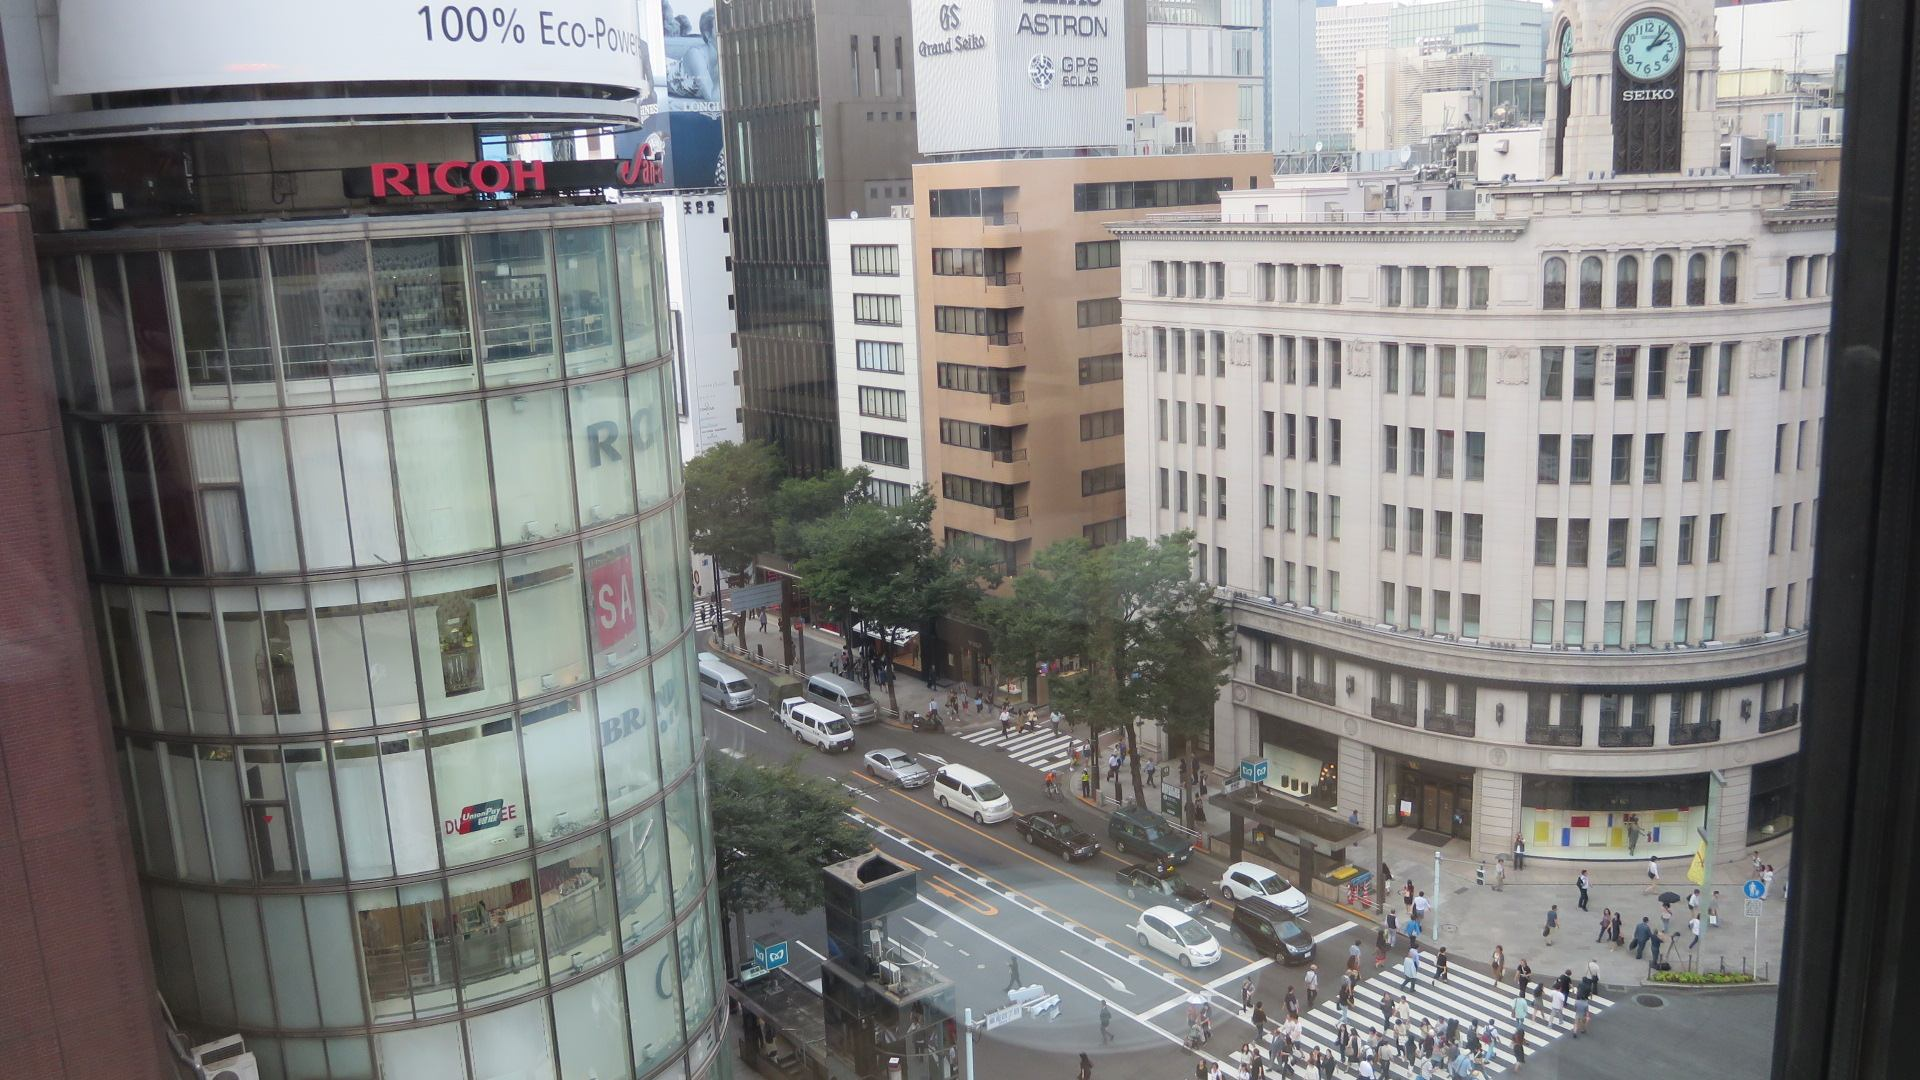 There was a great view of Ginza 4-Chome from the window.